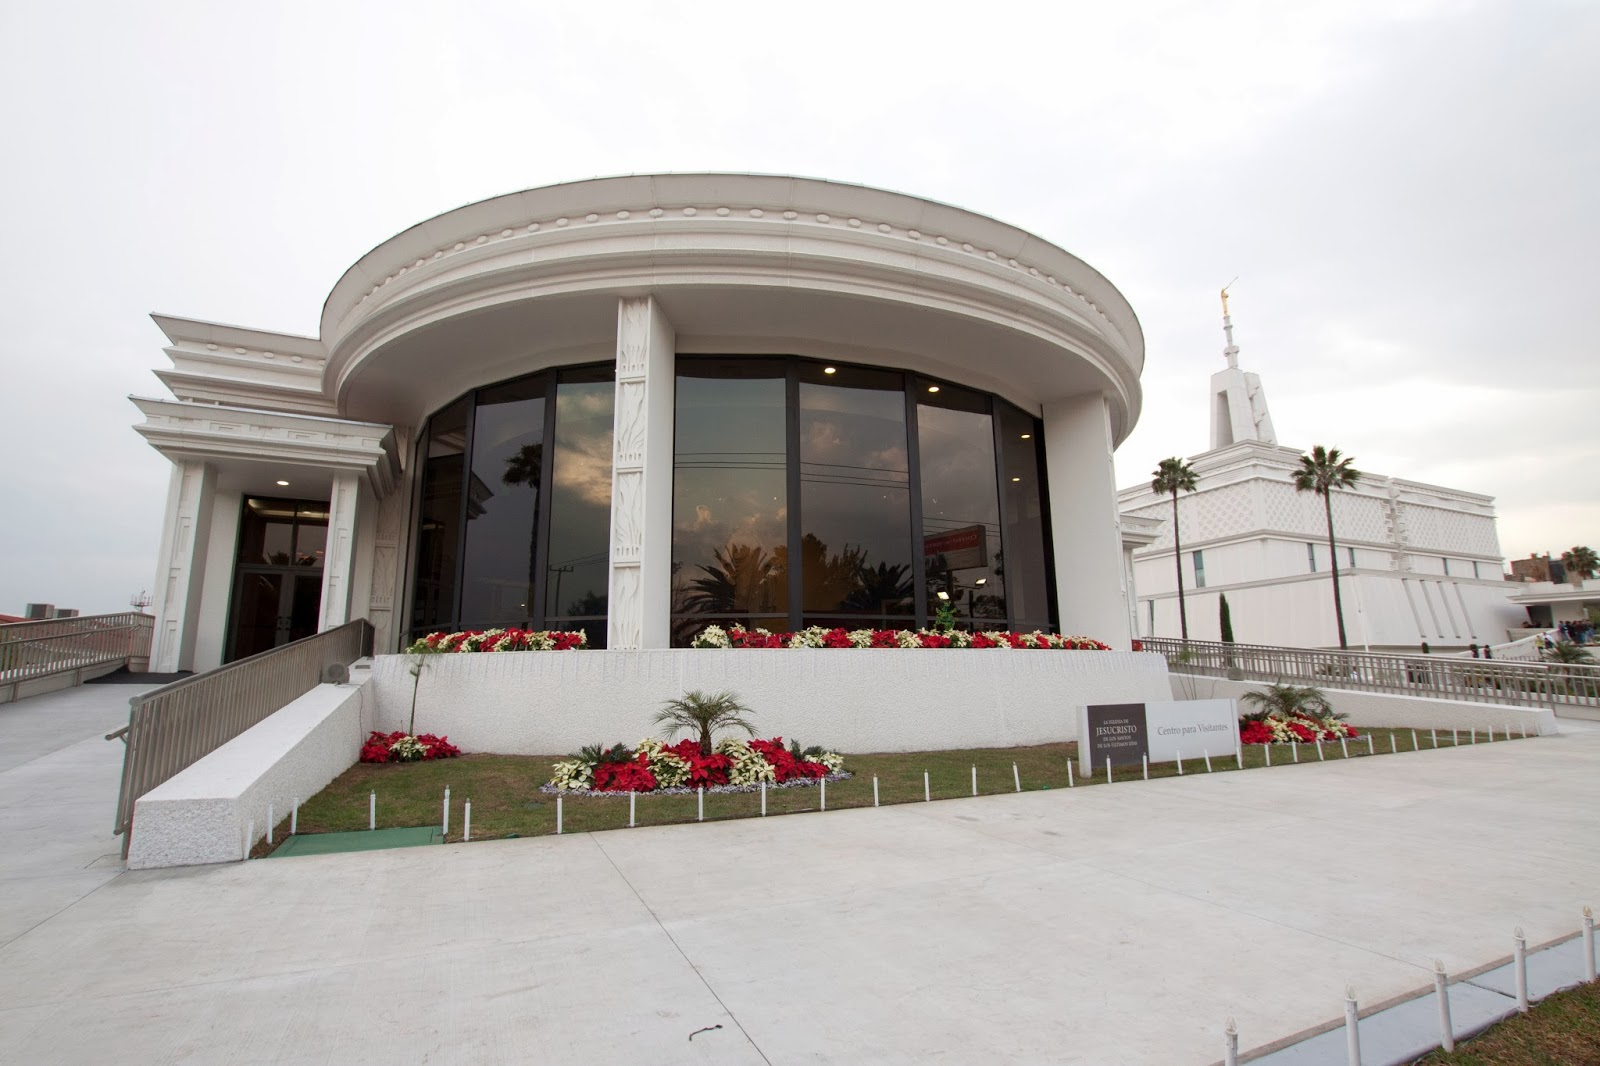 Mexico City L D S Temple Visitors Center w/ poinsettias poinsettas